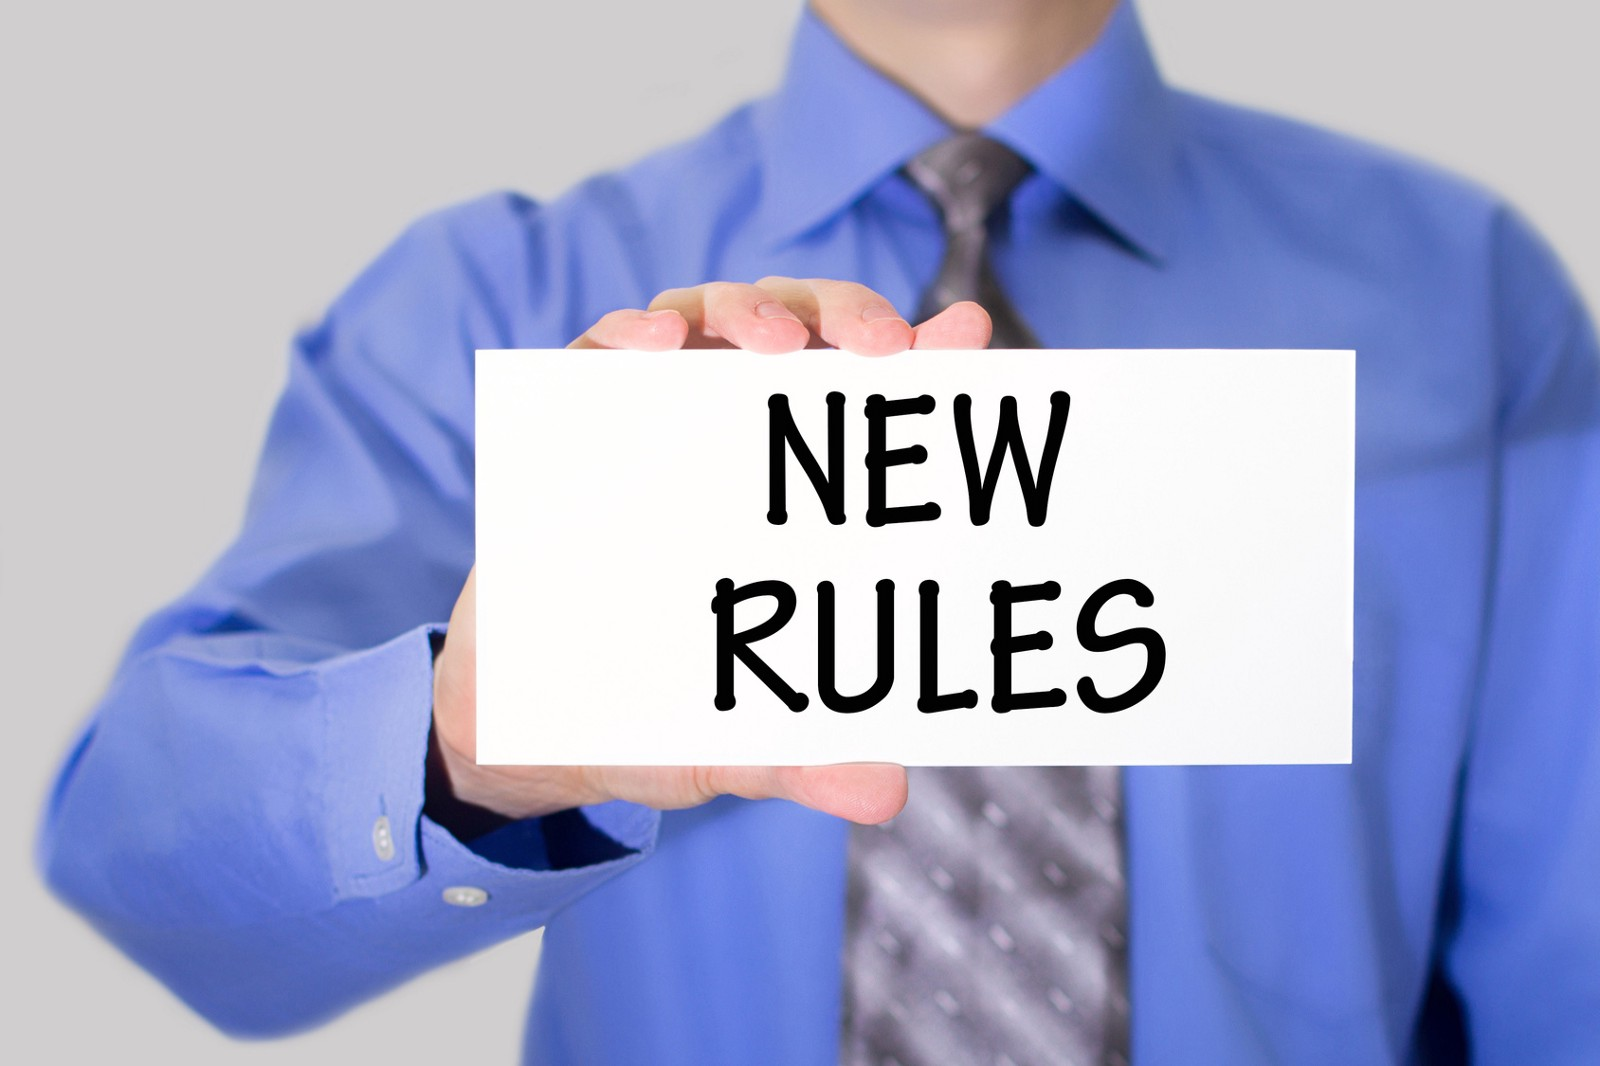 Four Best and Efficient Practices for Managing Privileged Accounts - Rules